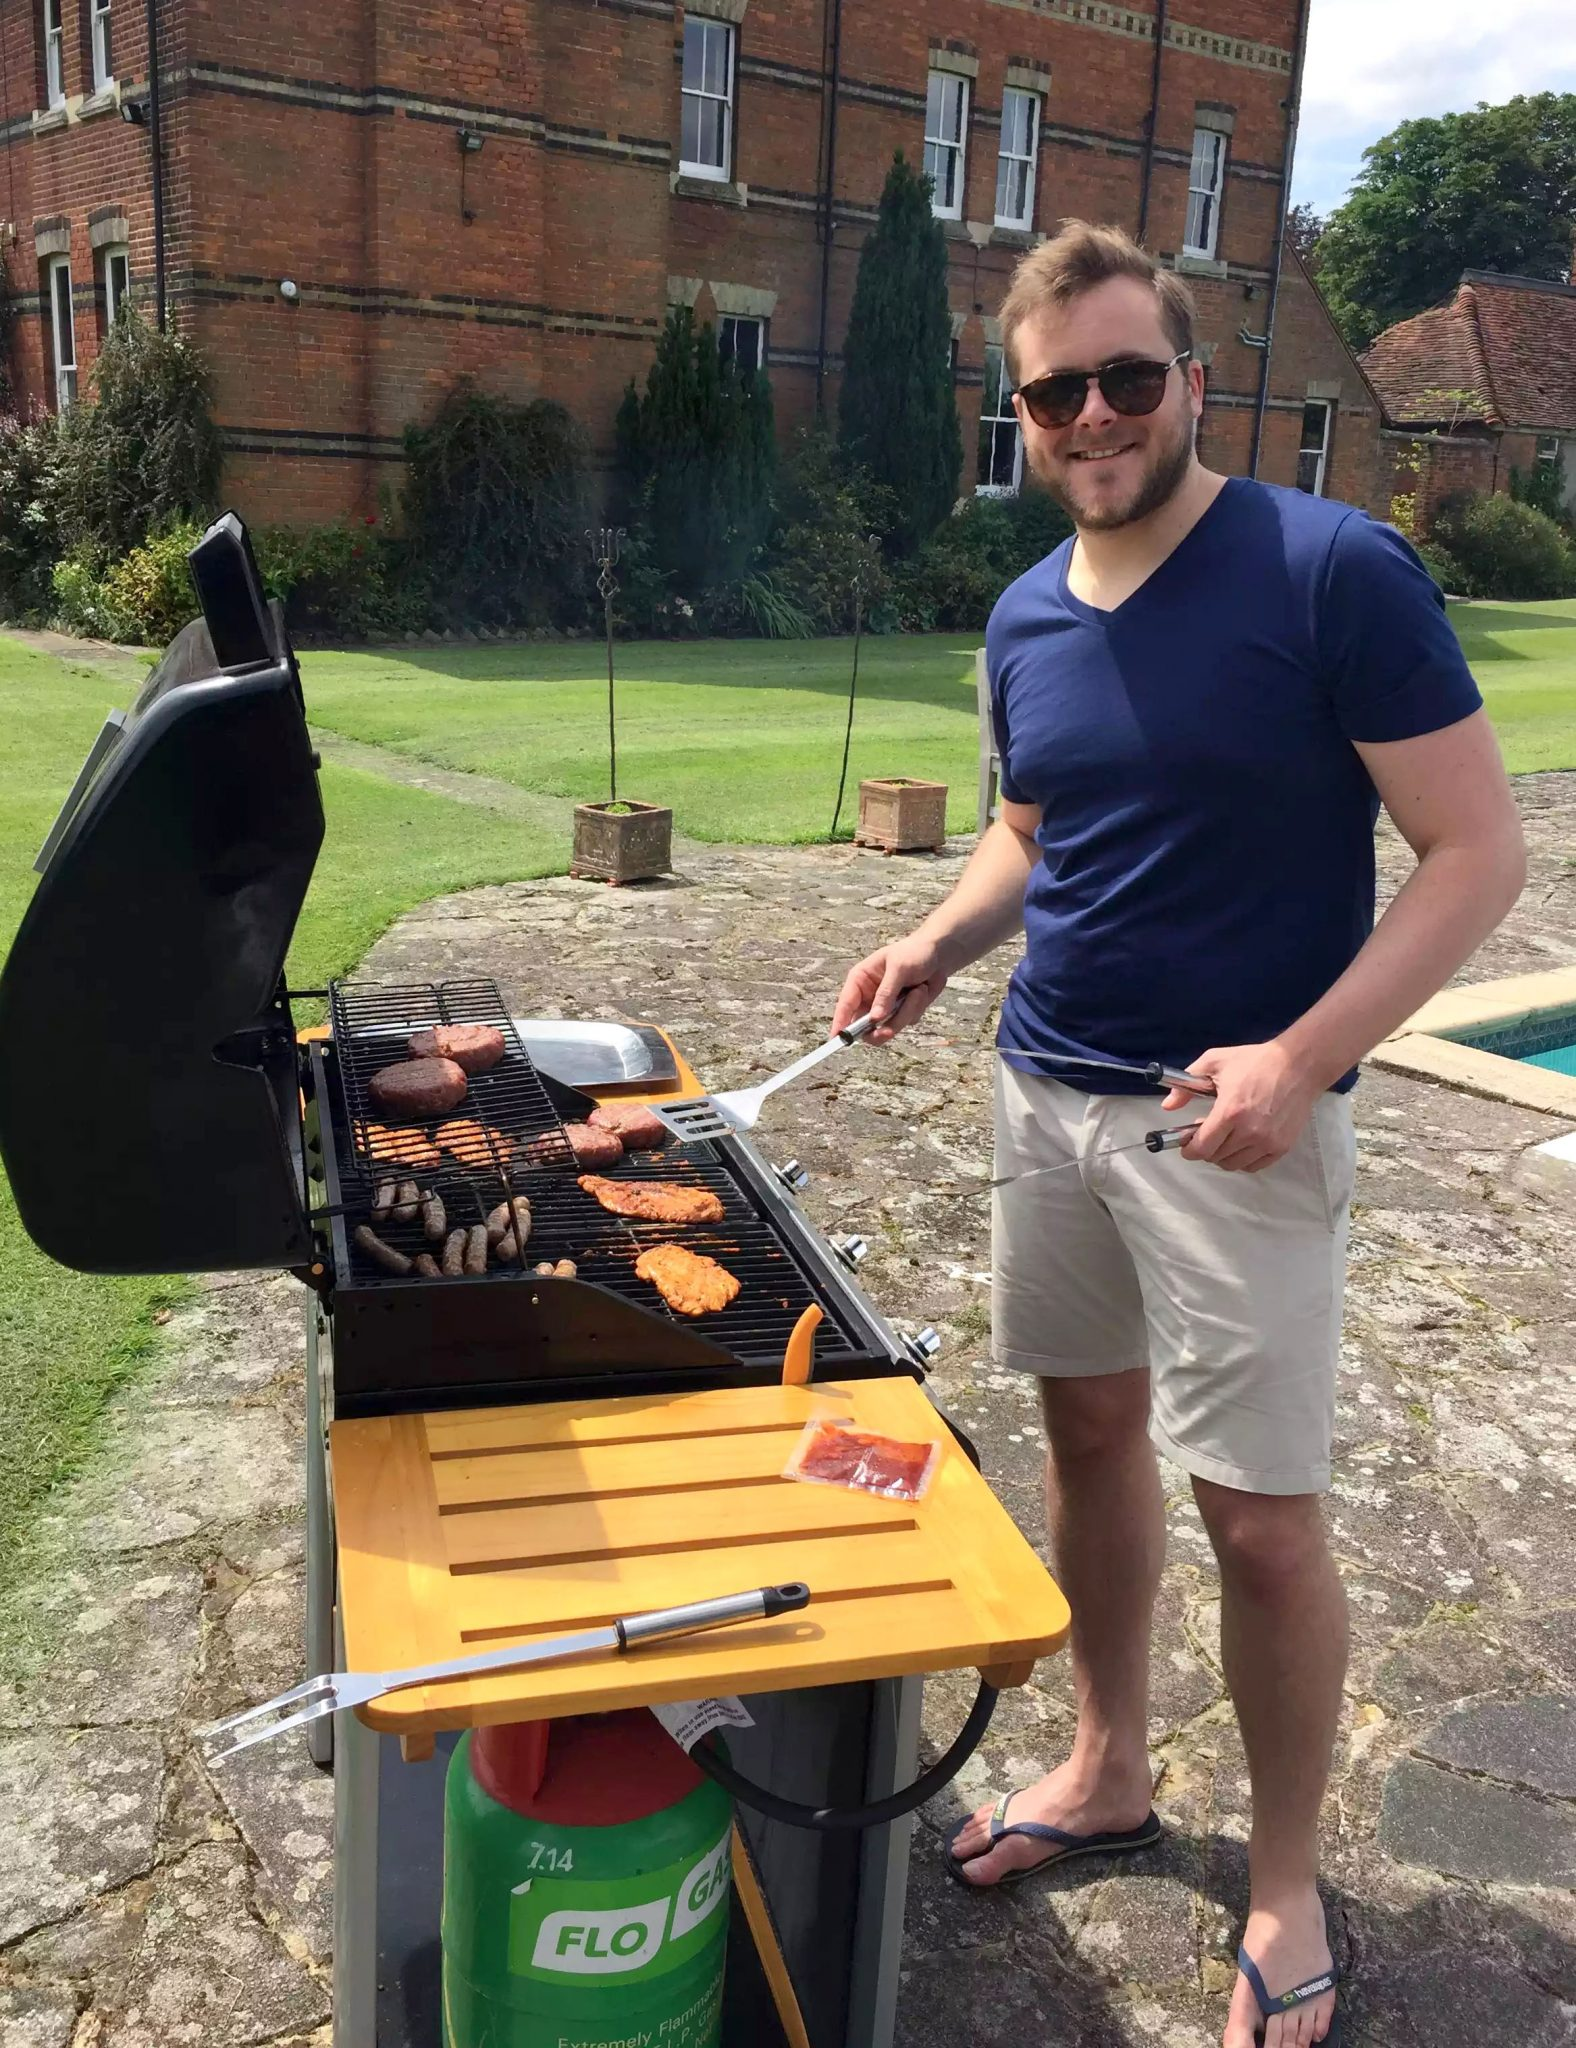 Fathers Day BBQ Marleys Family Sunshine Outdoor Dining Garden Celebration Meat Salads Sam BBQ Burgers Sausages Grilling Gluten Free